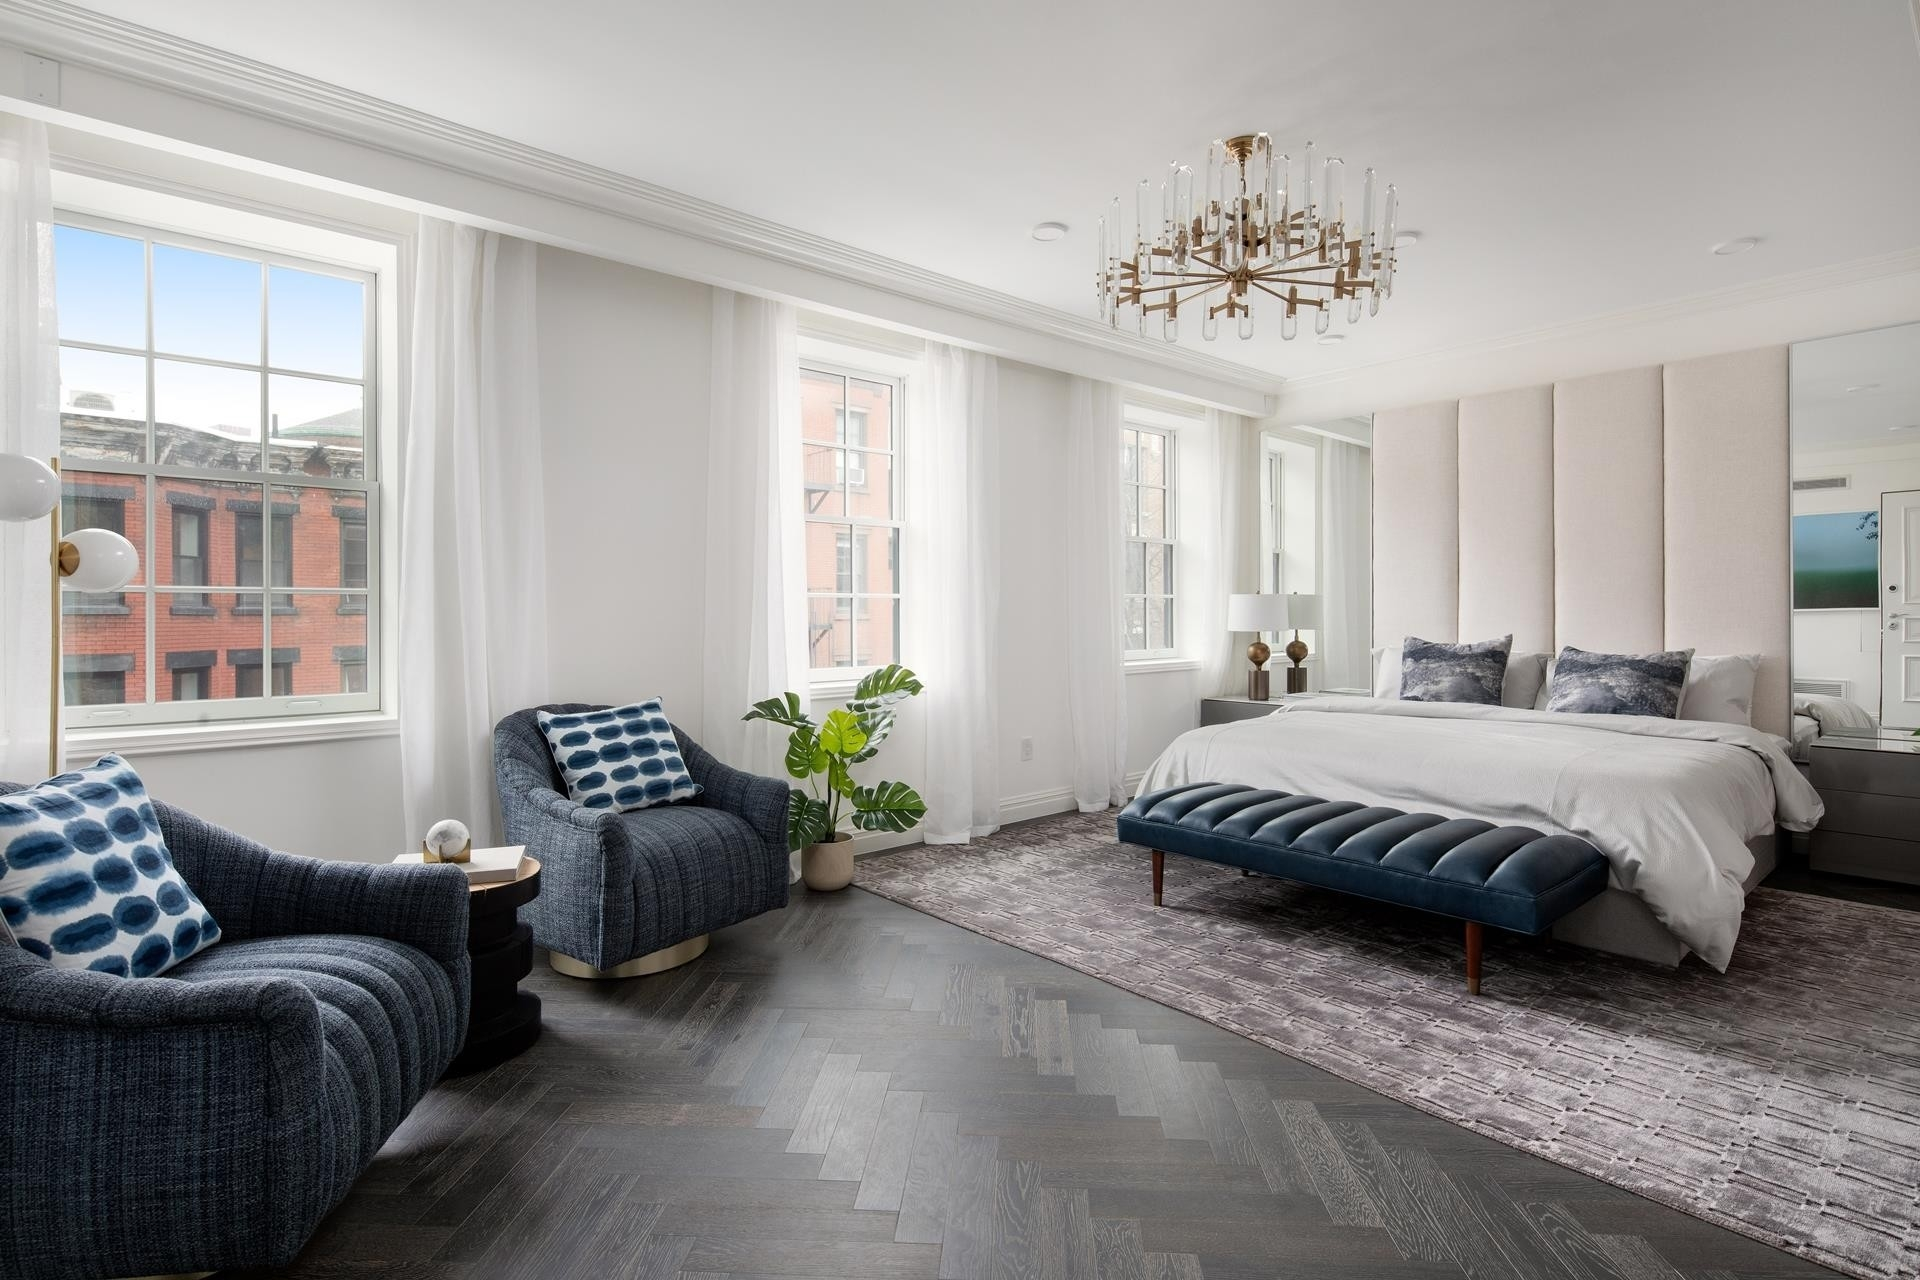 7. Single Family Townhouse for Sale at 50 HICKS ST , TH Brooklyn Heights, Brooklyn, NY 11201